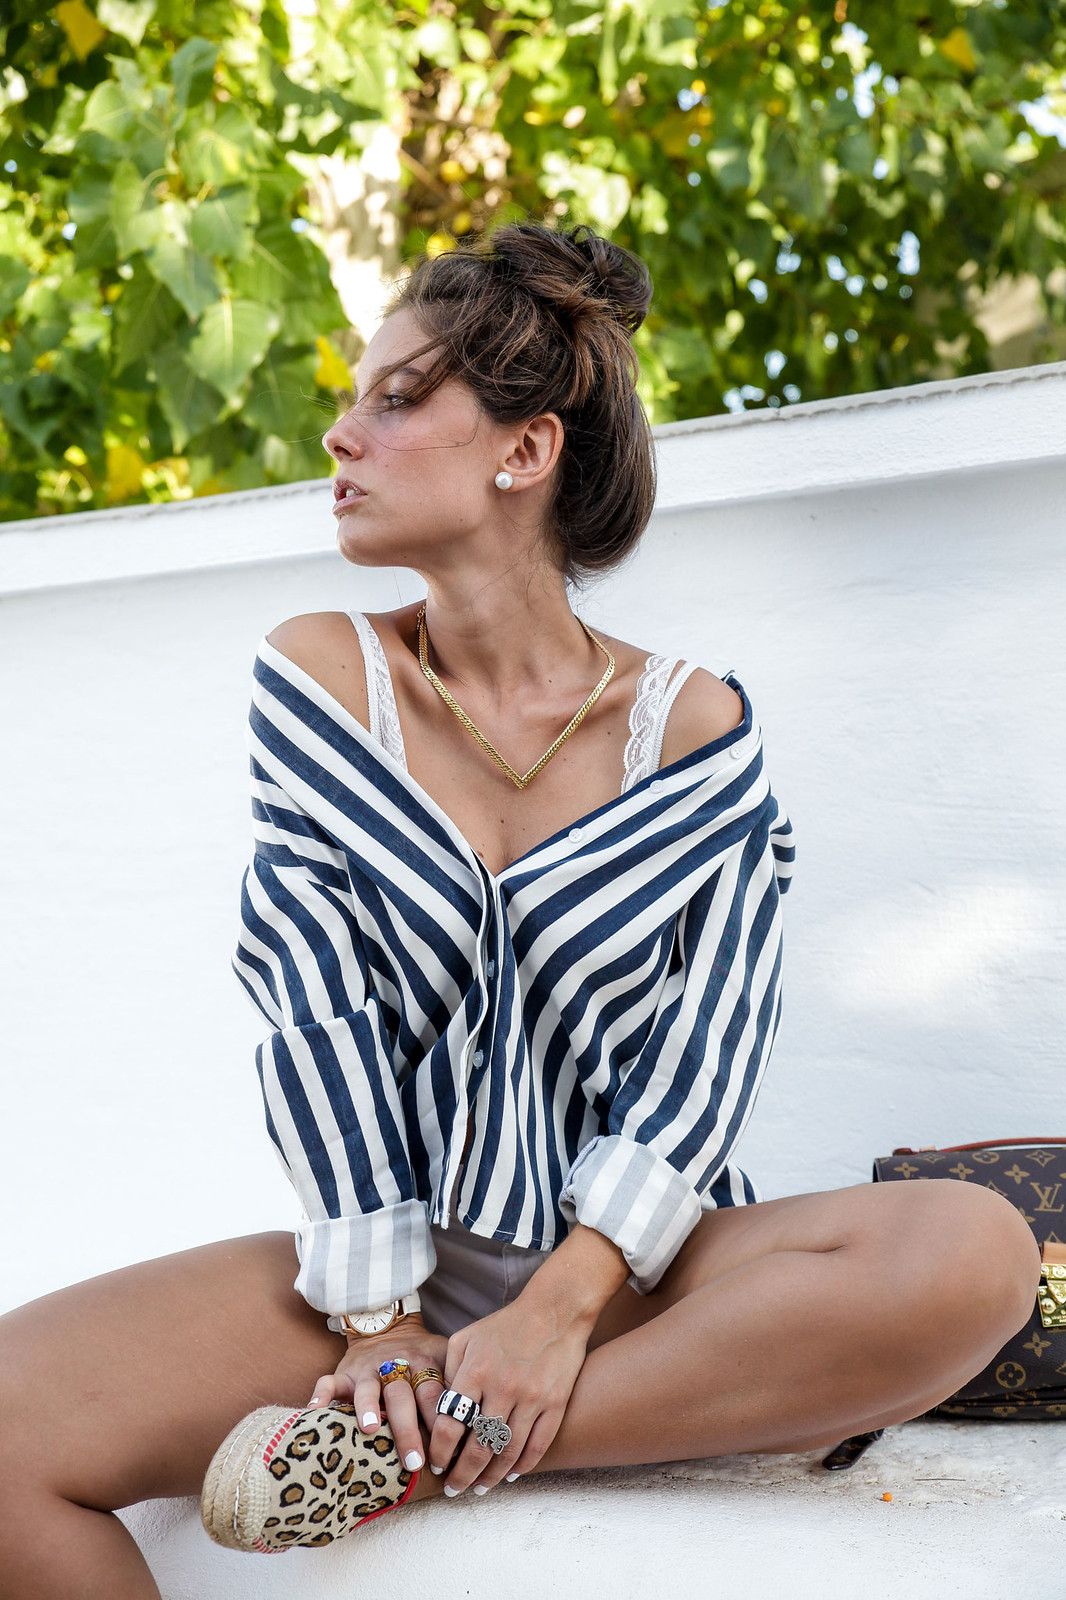 06_Leopard_and_stripes_perfec_mix_print_outfit_THEGUESTGIRL_henry_london_white